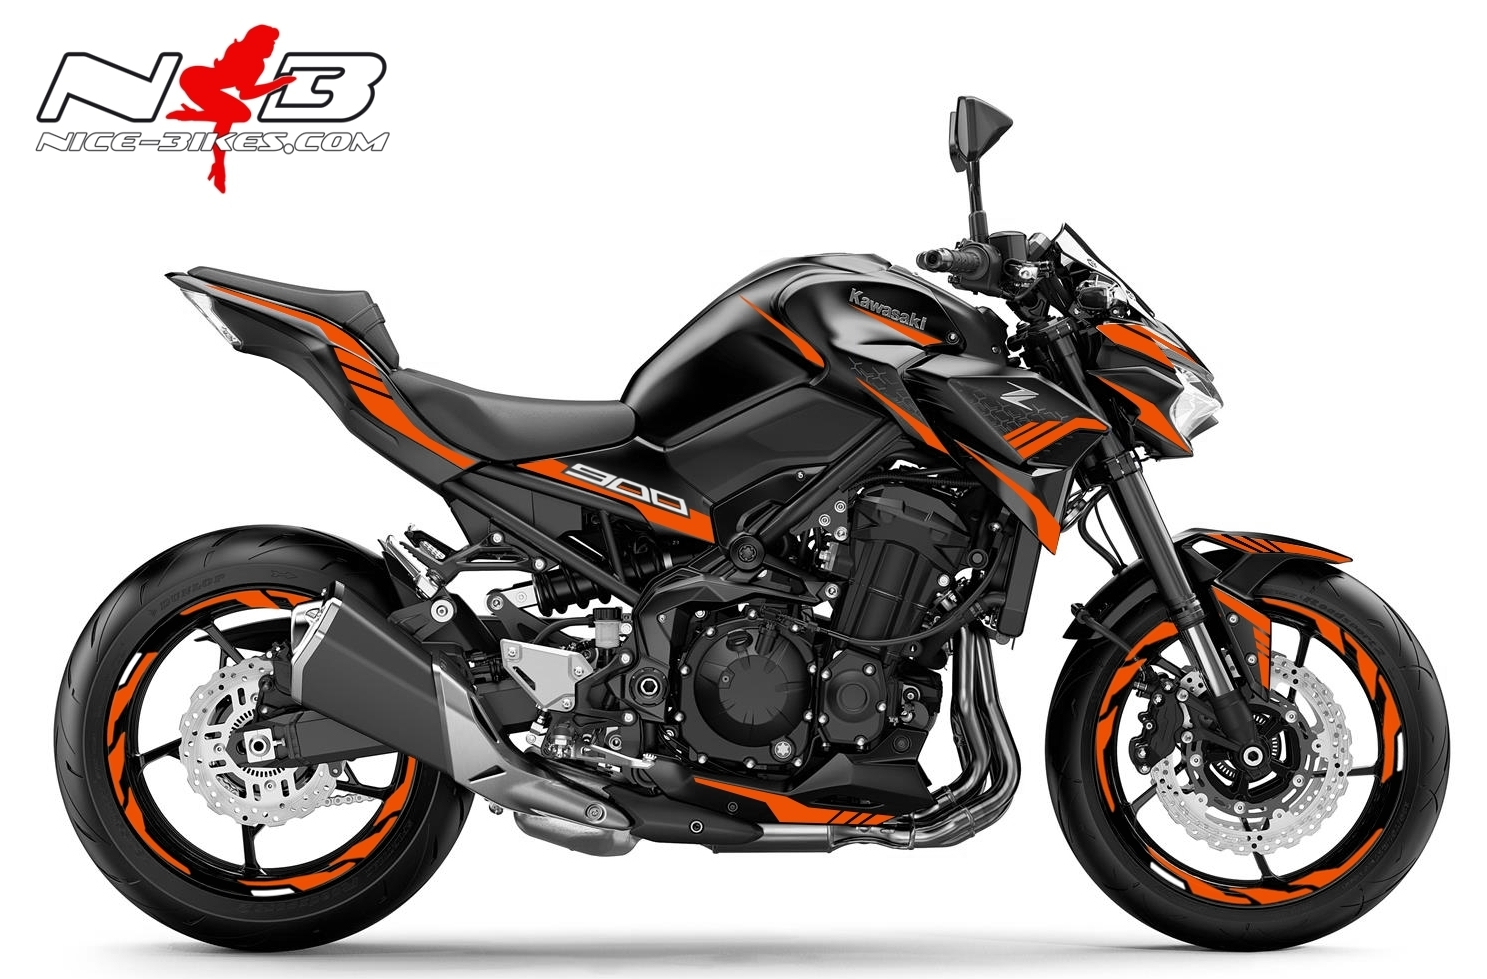 Foliendesign Kawasaki Z900 Bj. 2020 Evil Orange